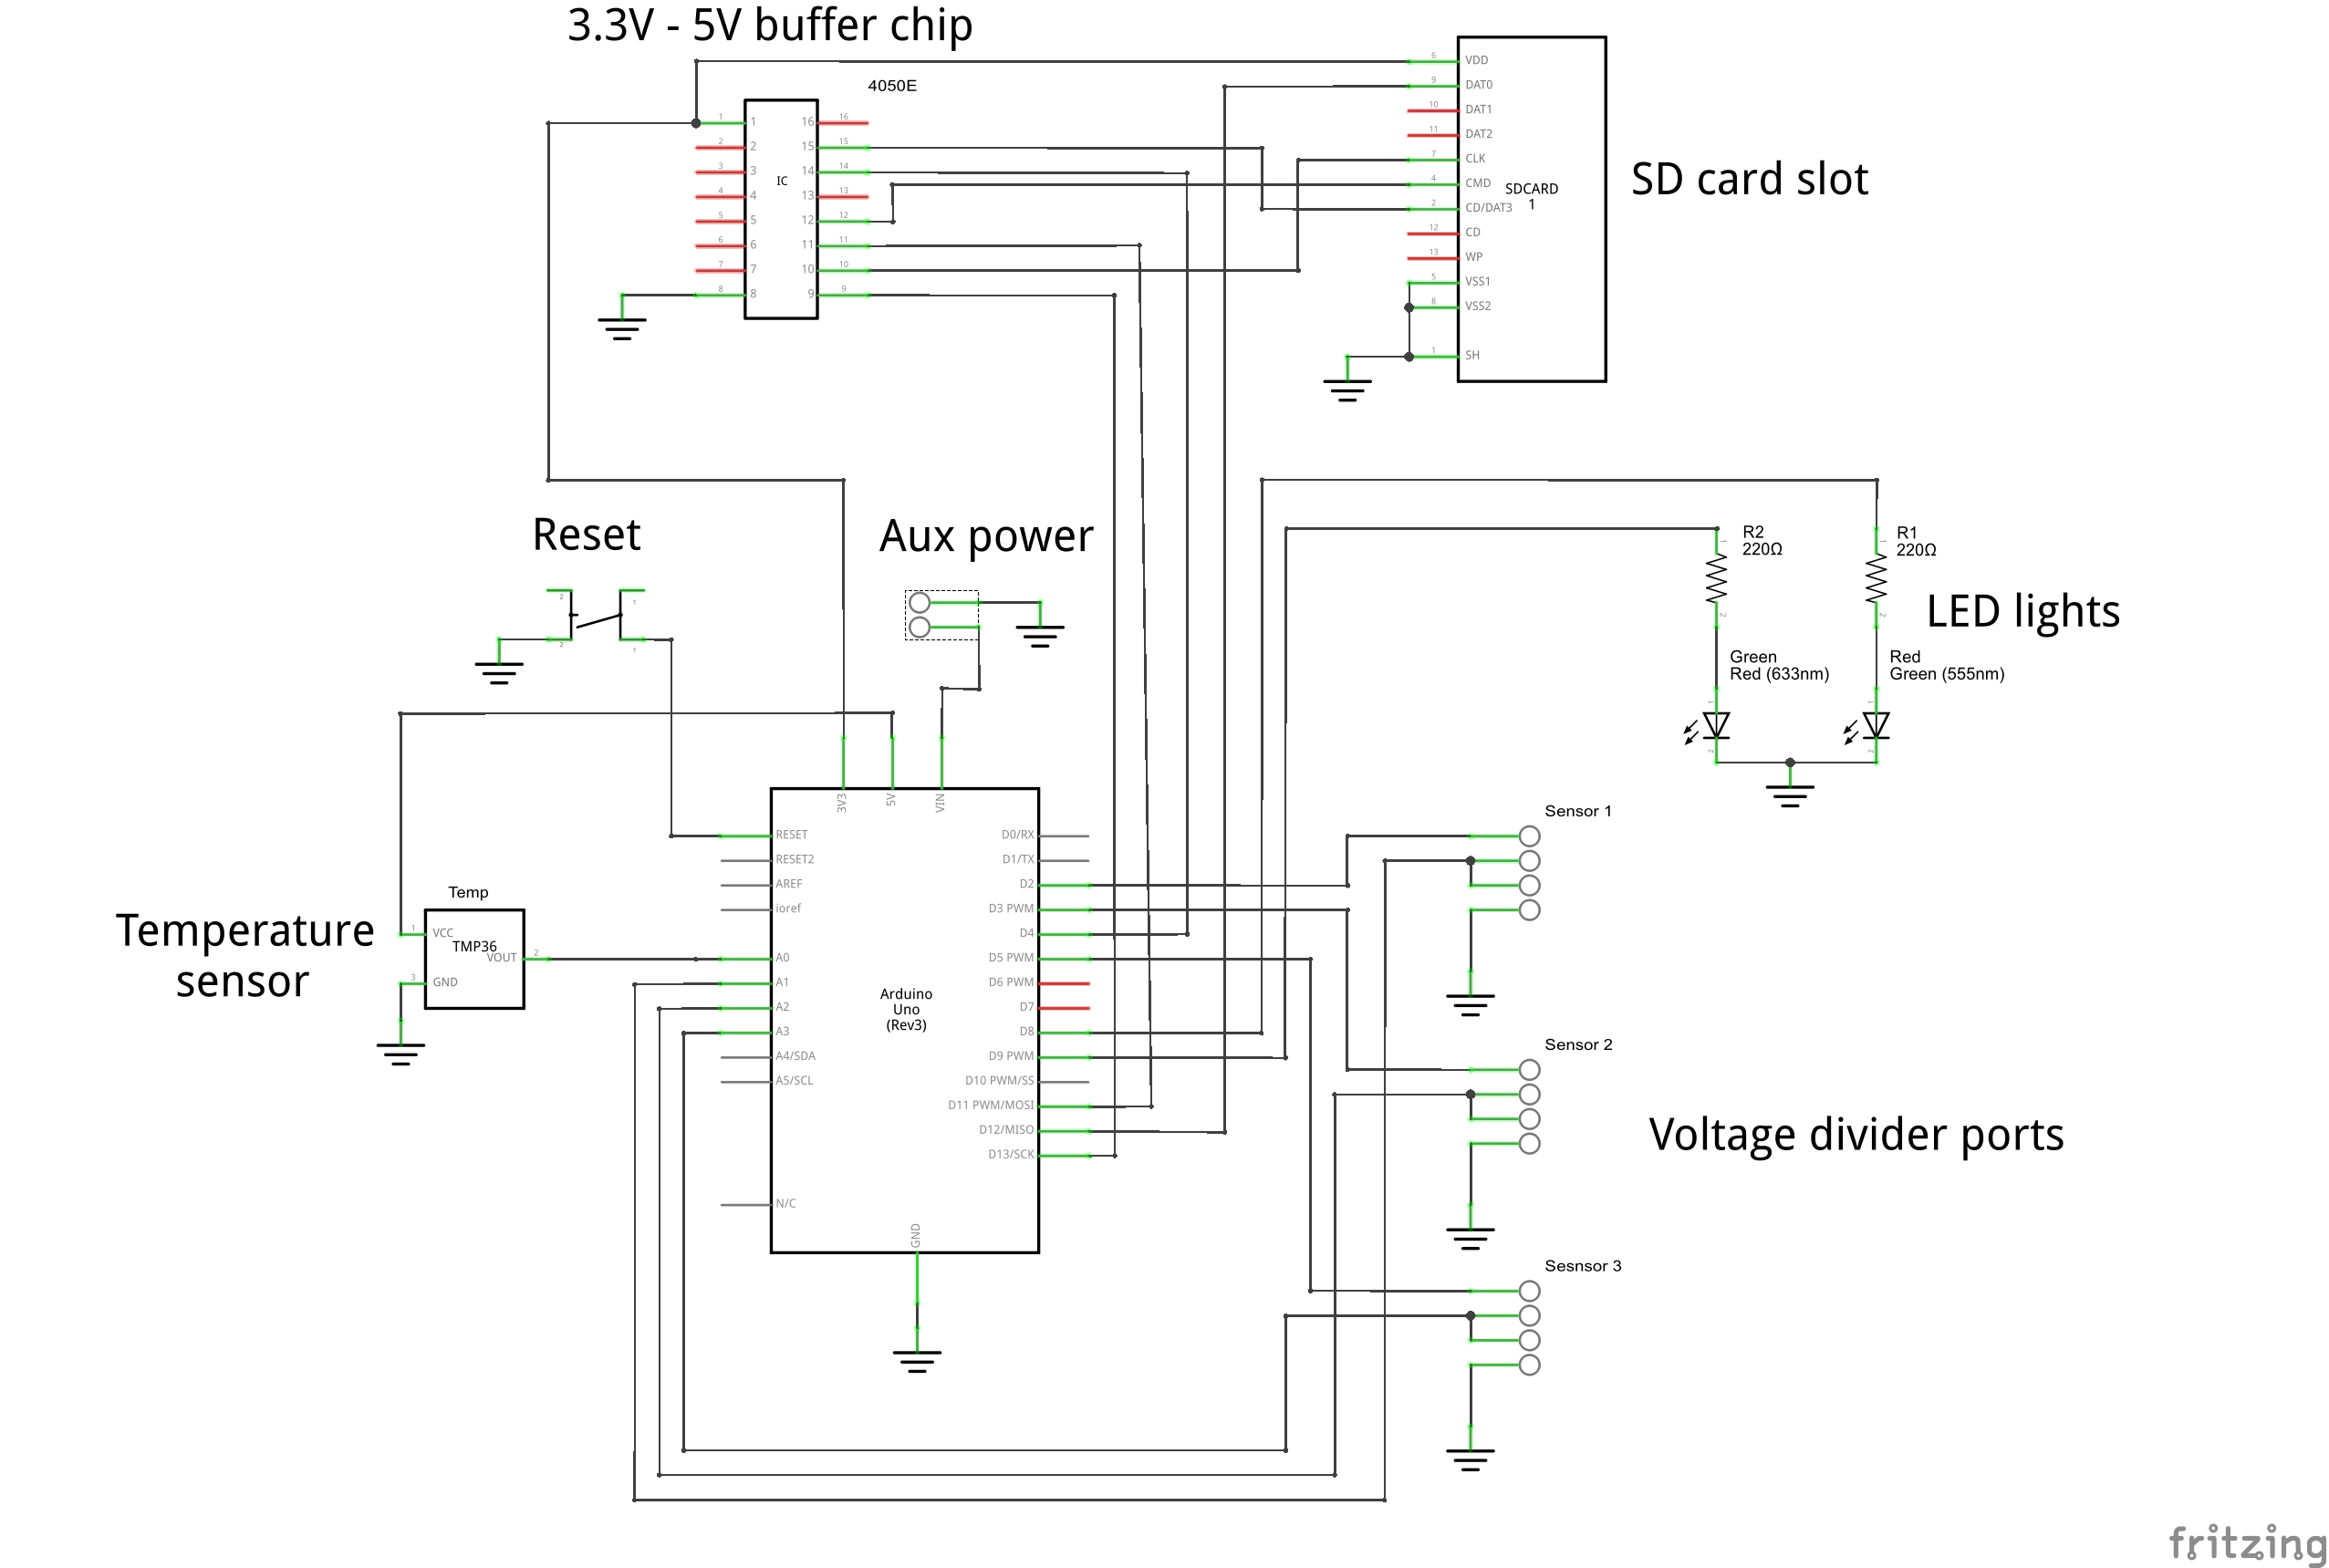 resistance_logger_updated_after_first_order_schematic